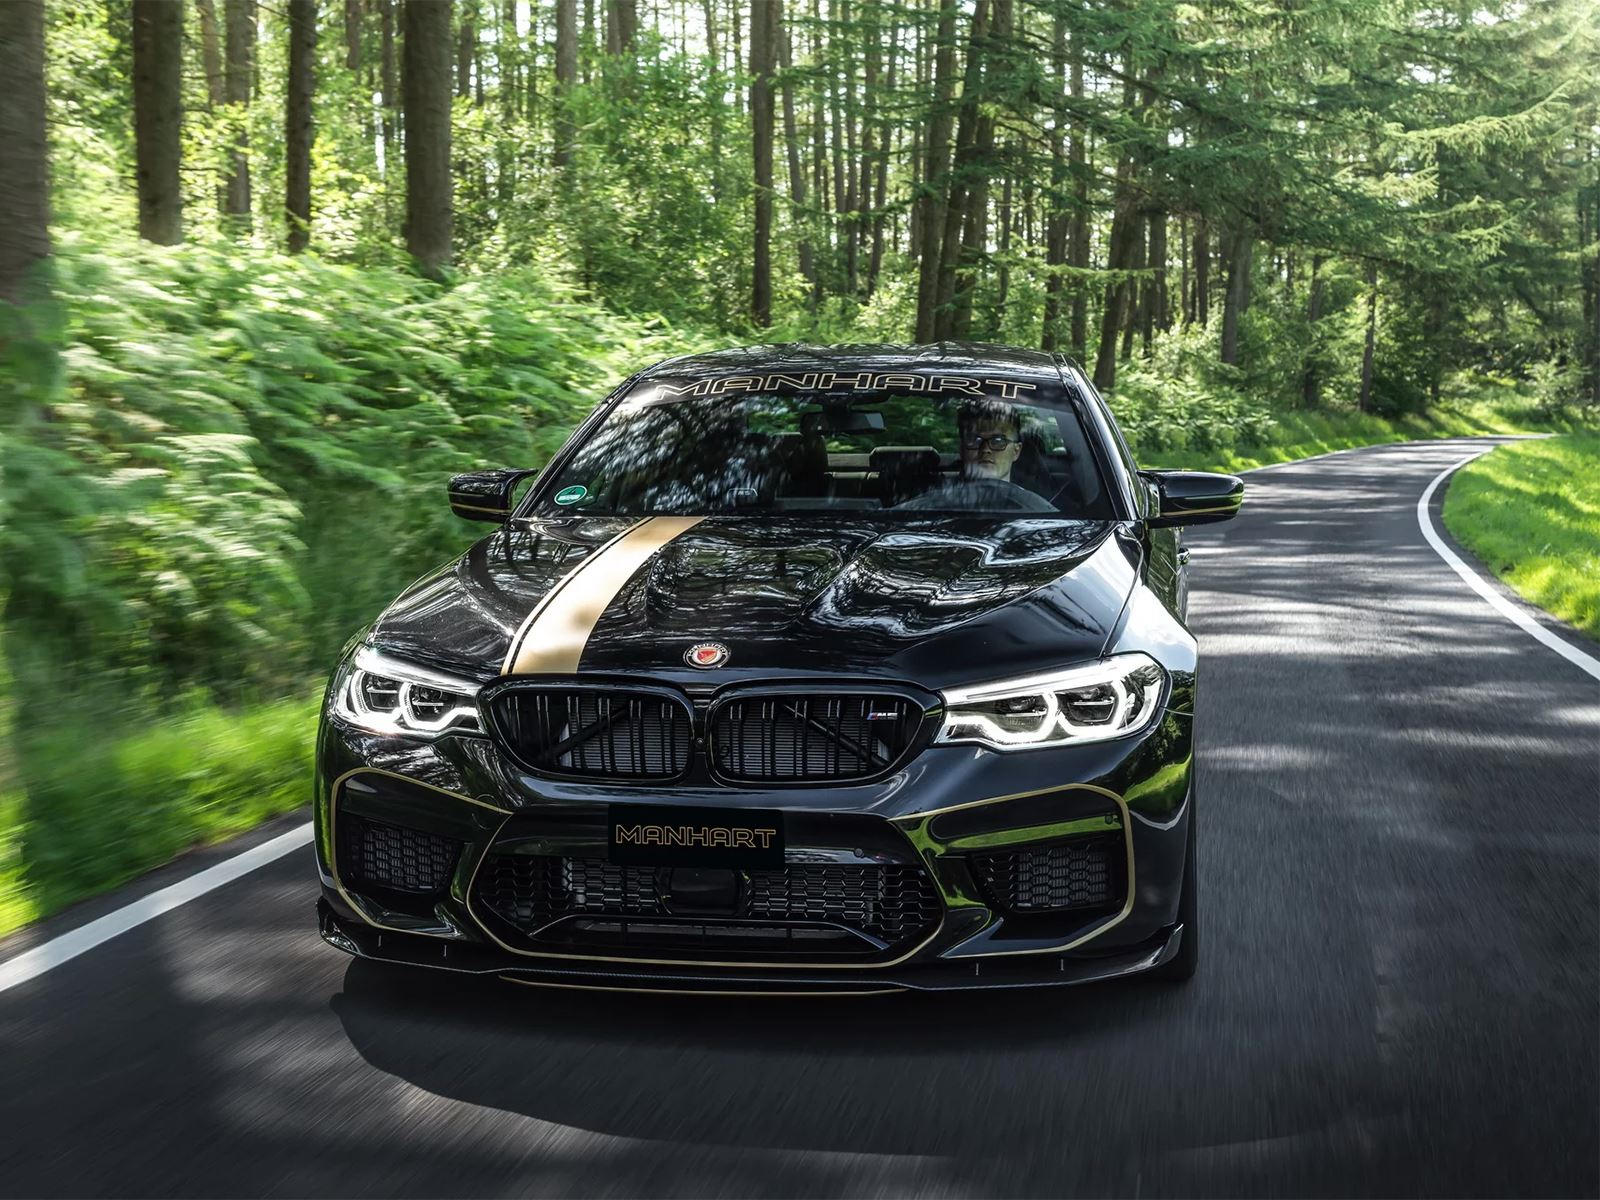 tuner transforms new bmw m5 into a 720 hp monster carbuzz. Black Bedroom Furniture Sets. Home Design Ideas